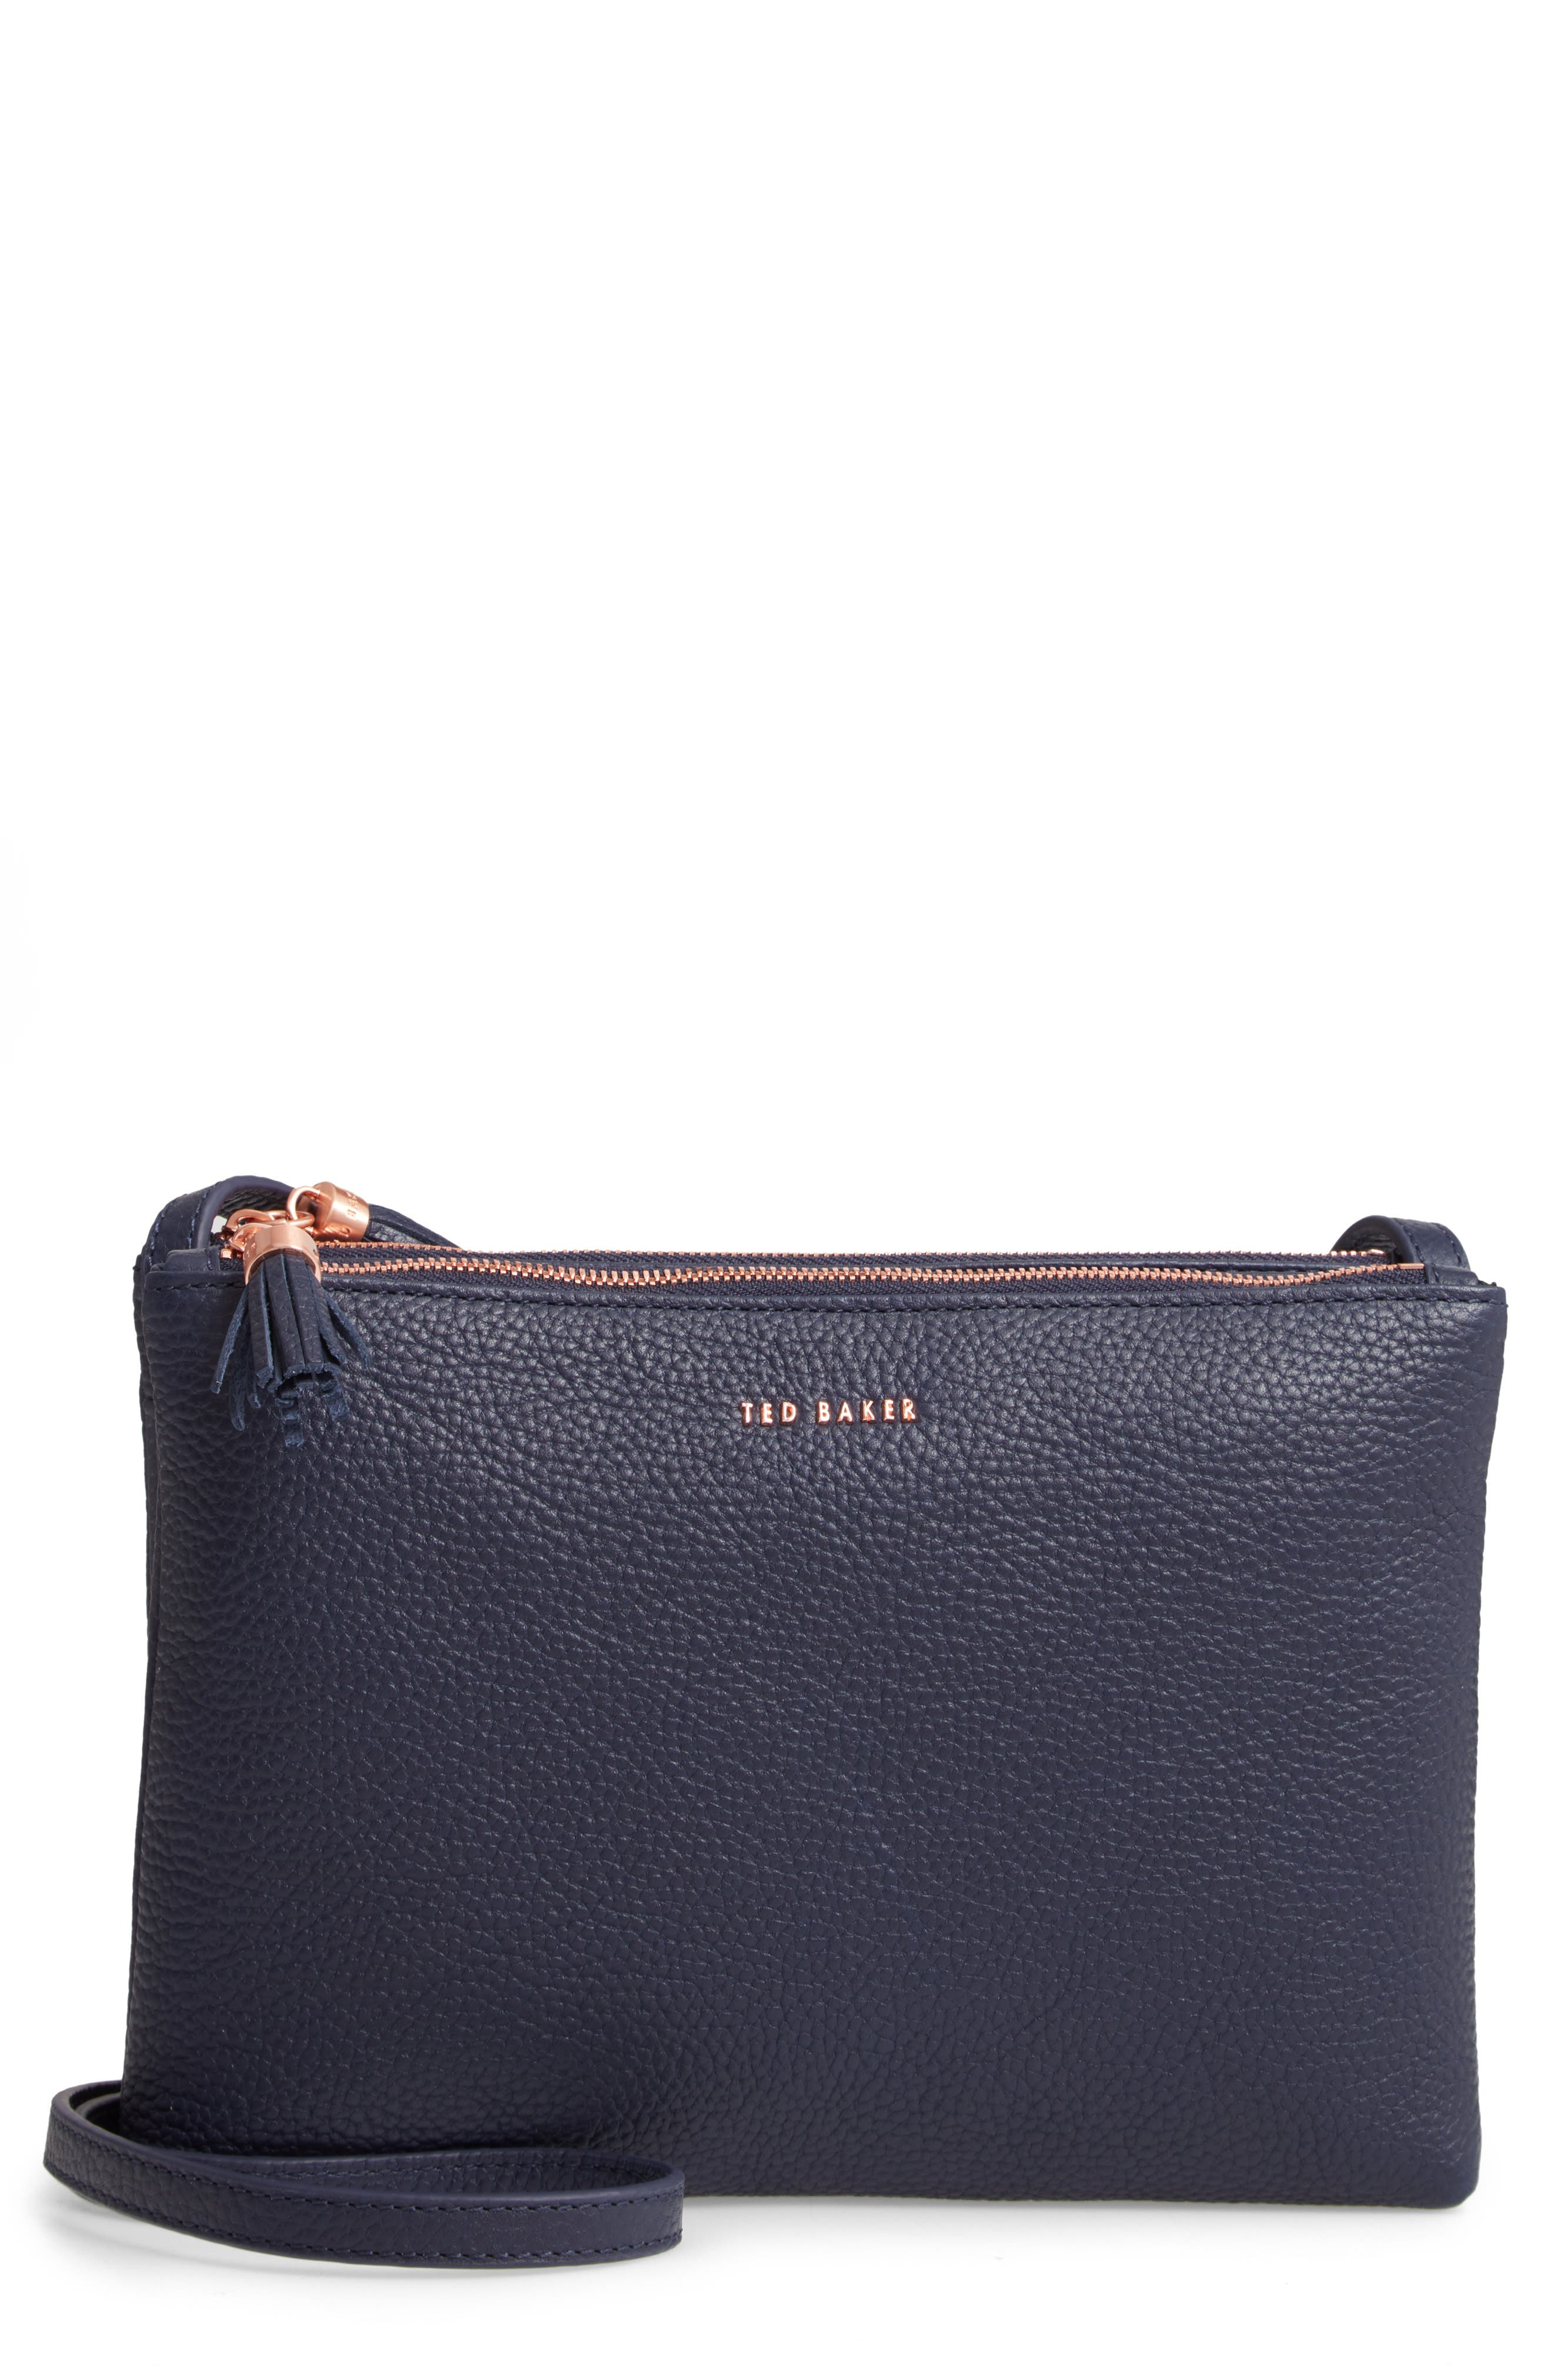 TED BAKER LONDON Maceyy Double Zip Leather Crossbody Bag, Main, color, NAVY